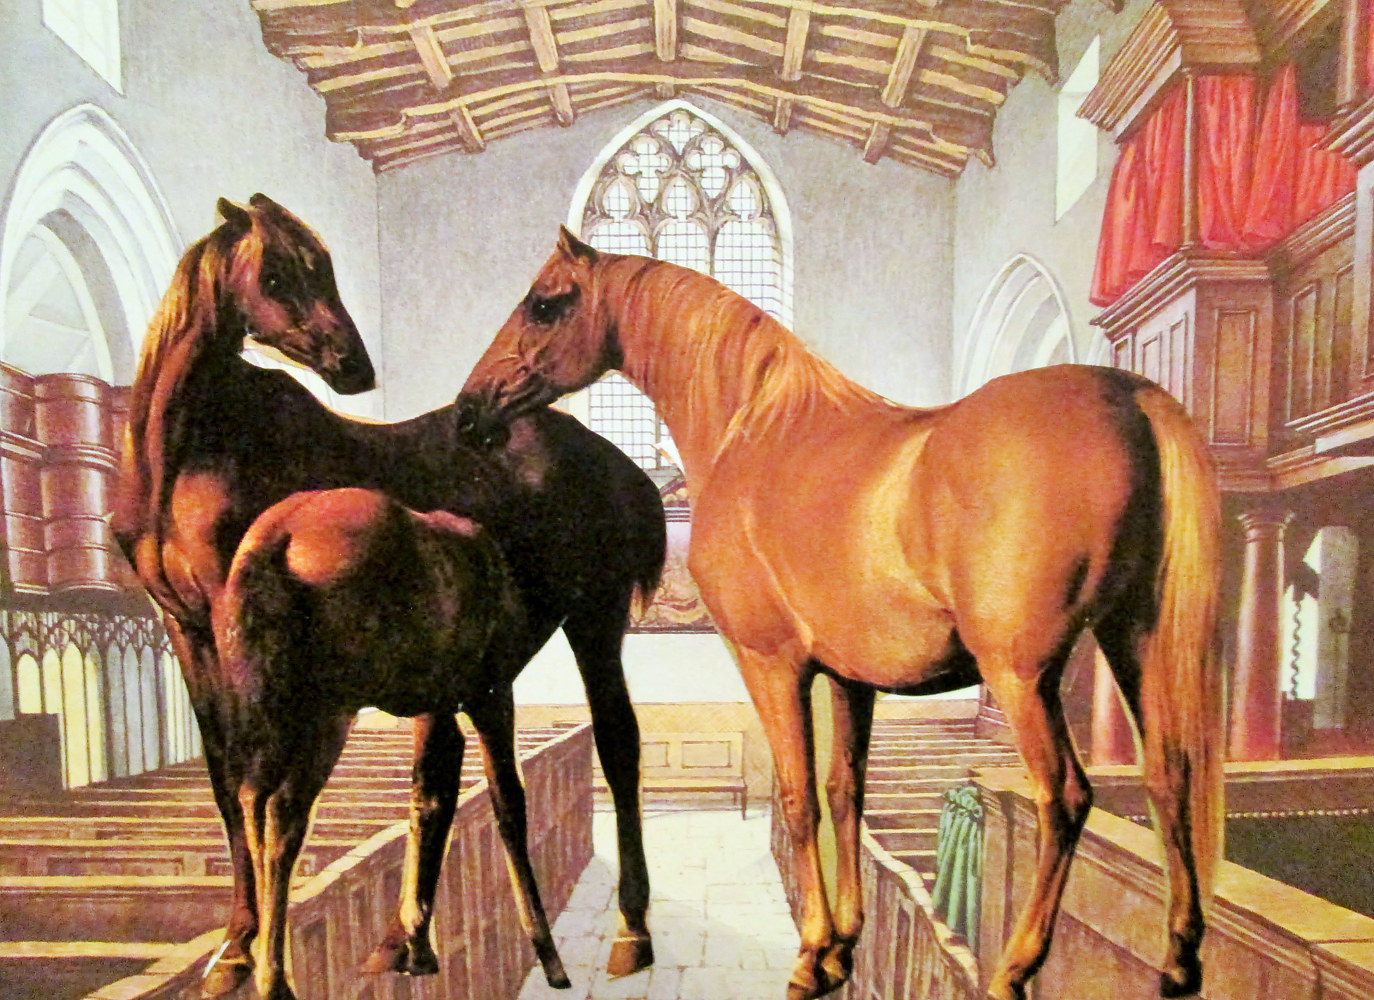 The Chapel of the Equine  by Jo Ann Tunnell Muench